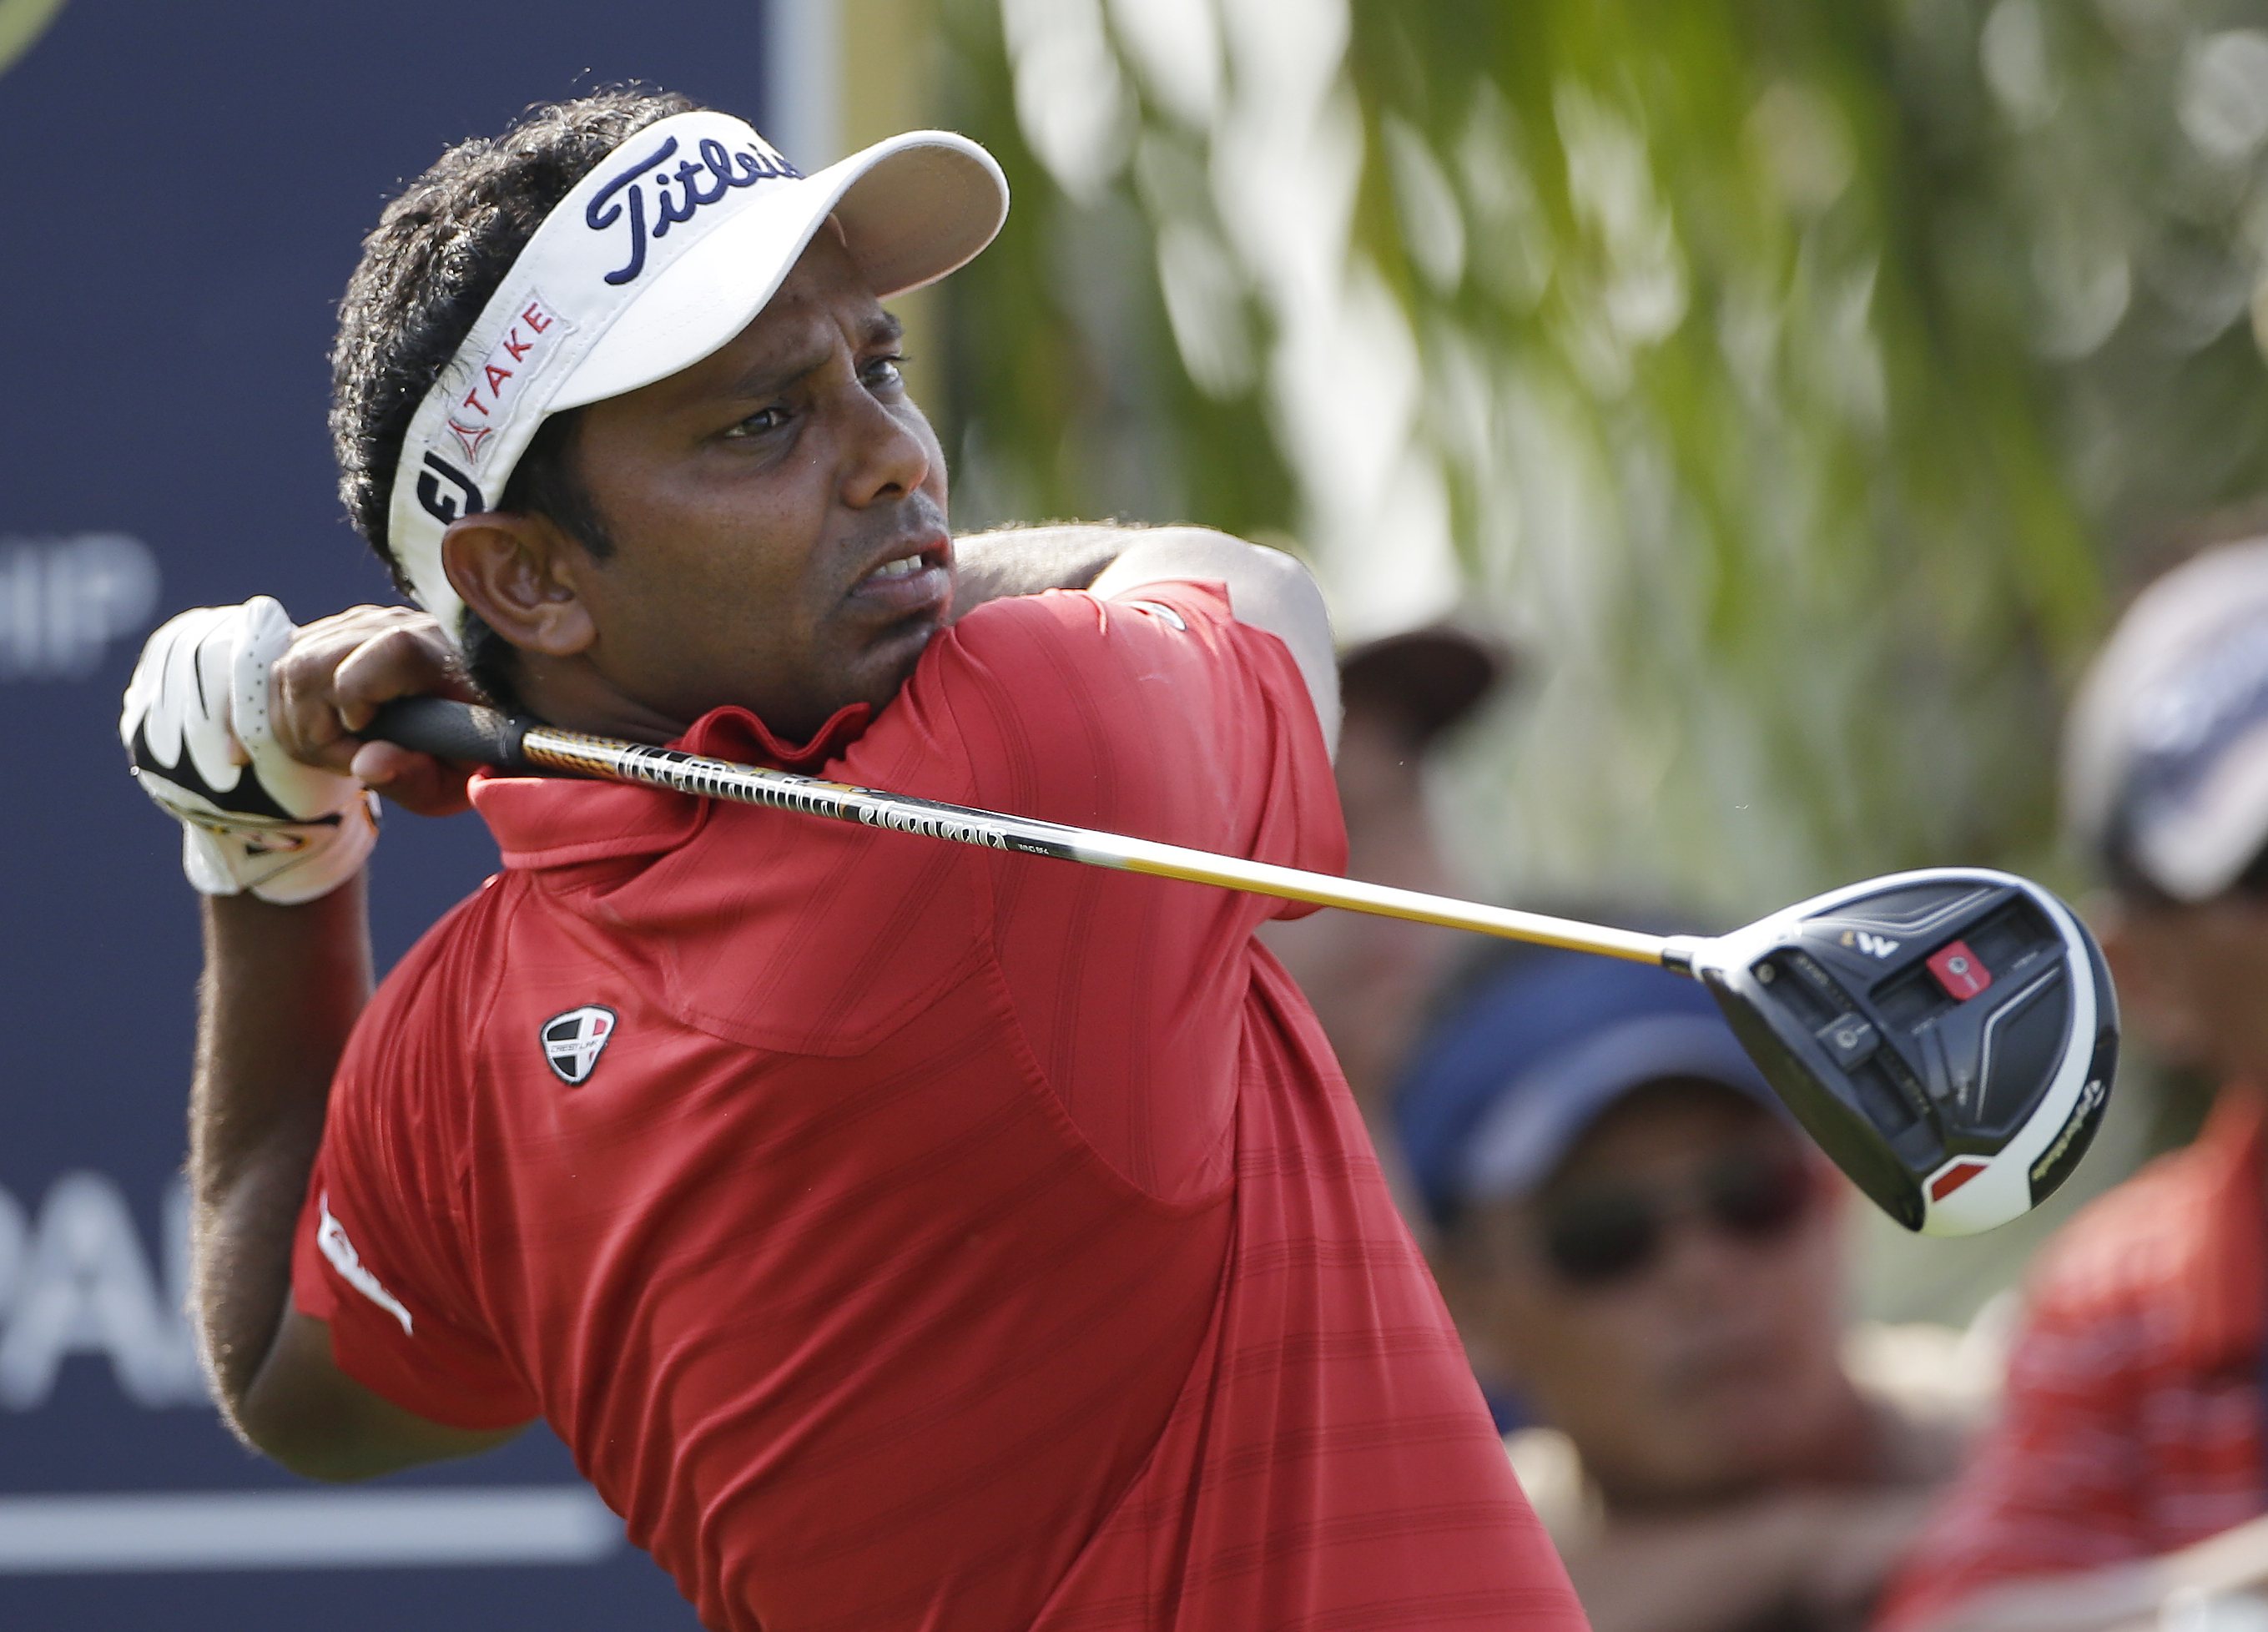 India's S.S.P Chawrasia watches his tee shot on the 18th hole during the final round of the Thailand Golf Championship at Amata Spring Country Club, Chonburi, Thailand, Sunday, Dec. 13, 2015. (AP Photo/Mark Baker)